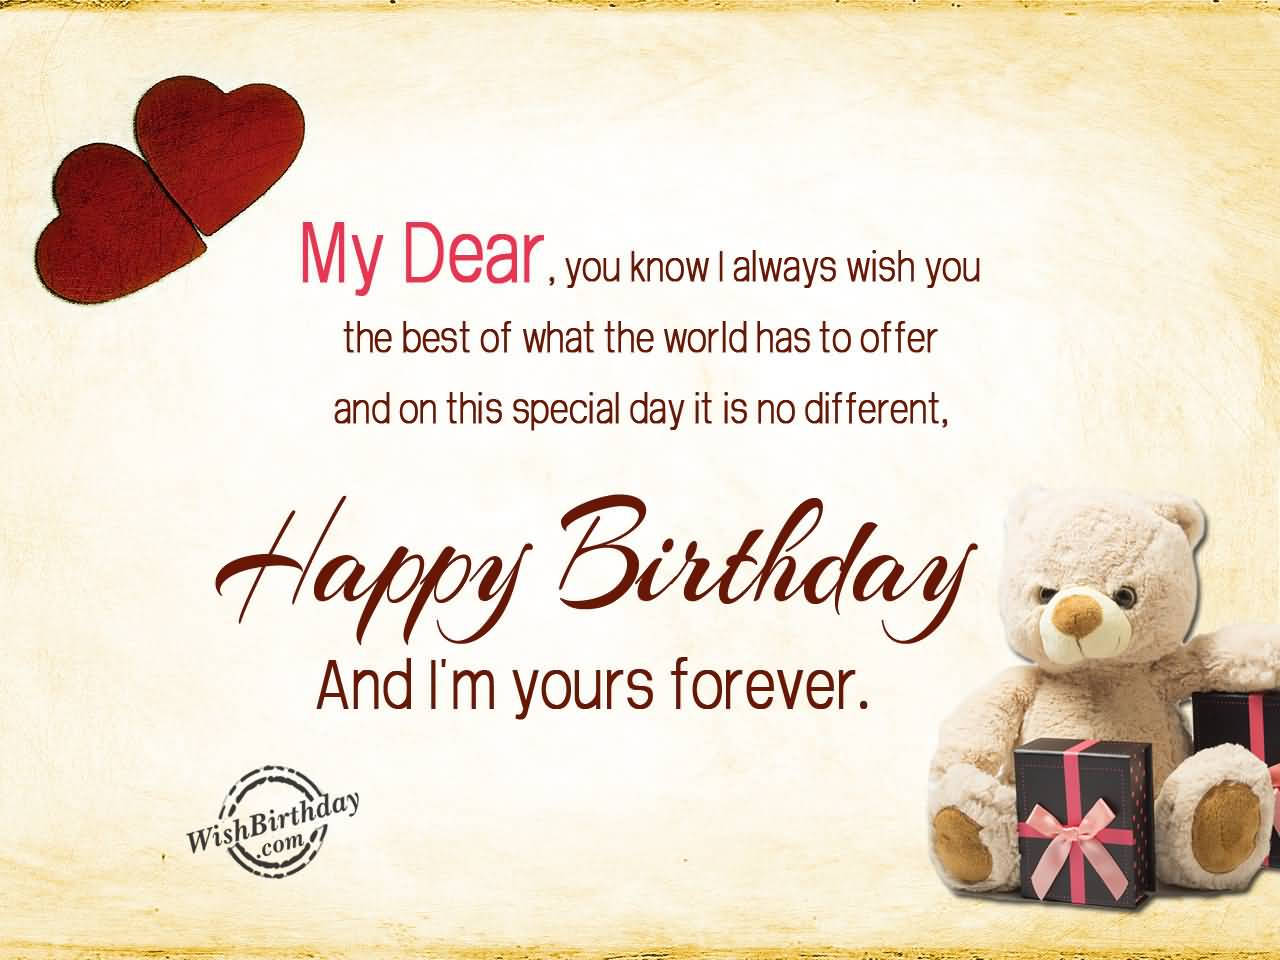 My Dear Friend I Wish You A Very Happy Birthday Wish You Happy Birthday My Dear Friend